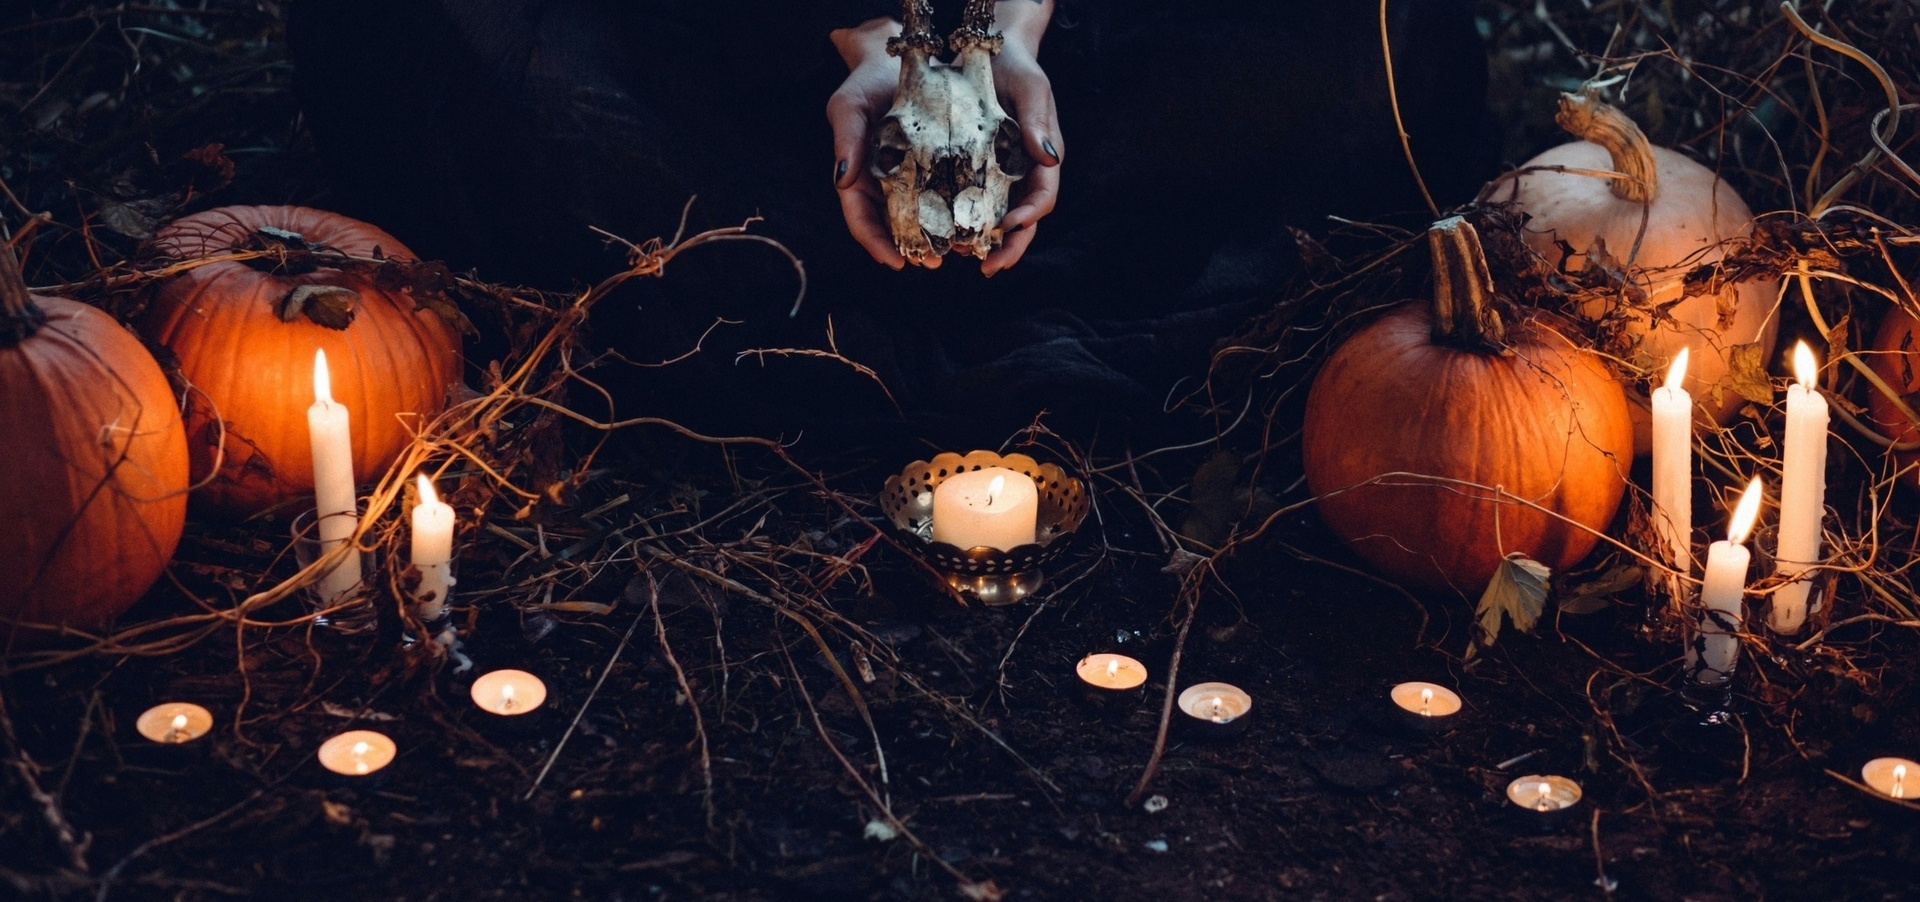 Use SMS Marketing for Scary Halloween Promotions This Year